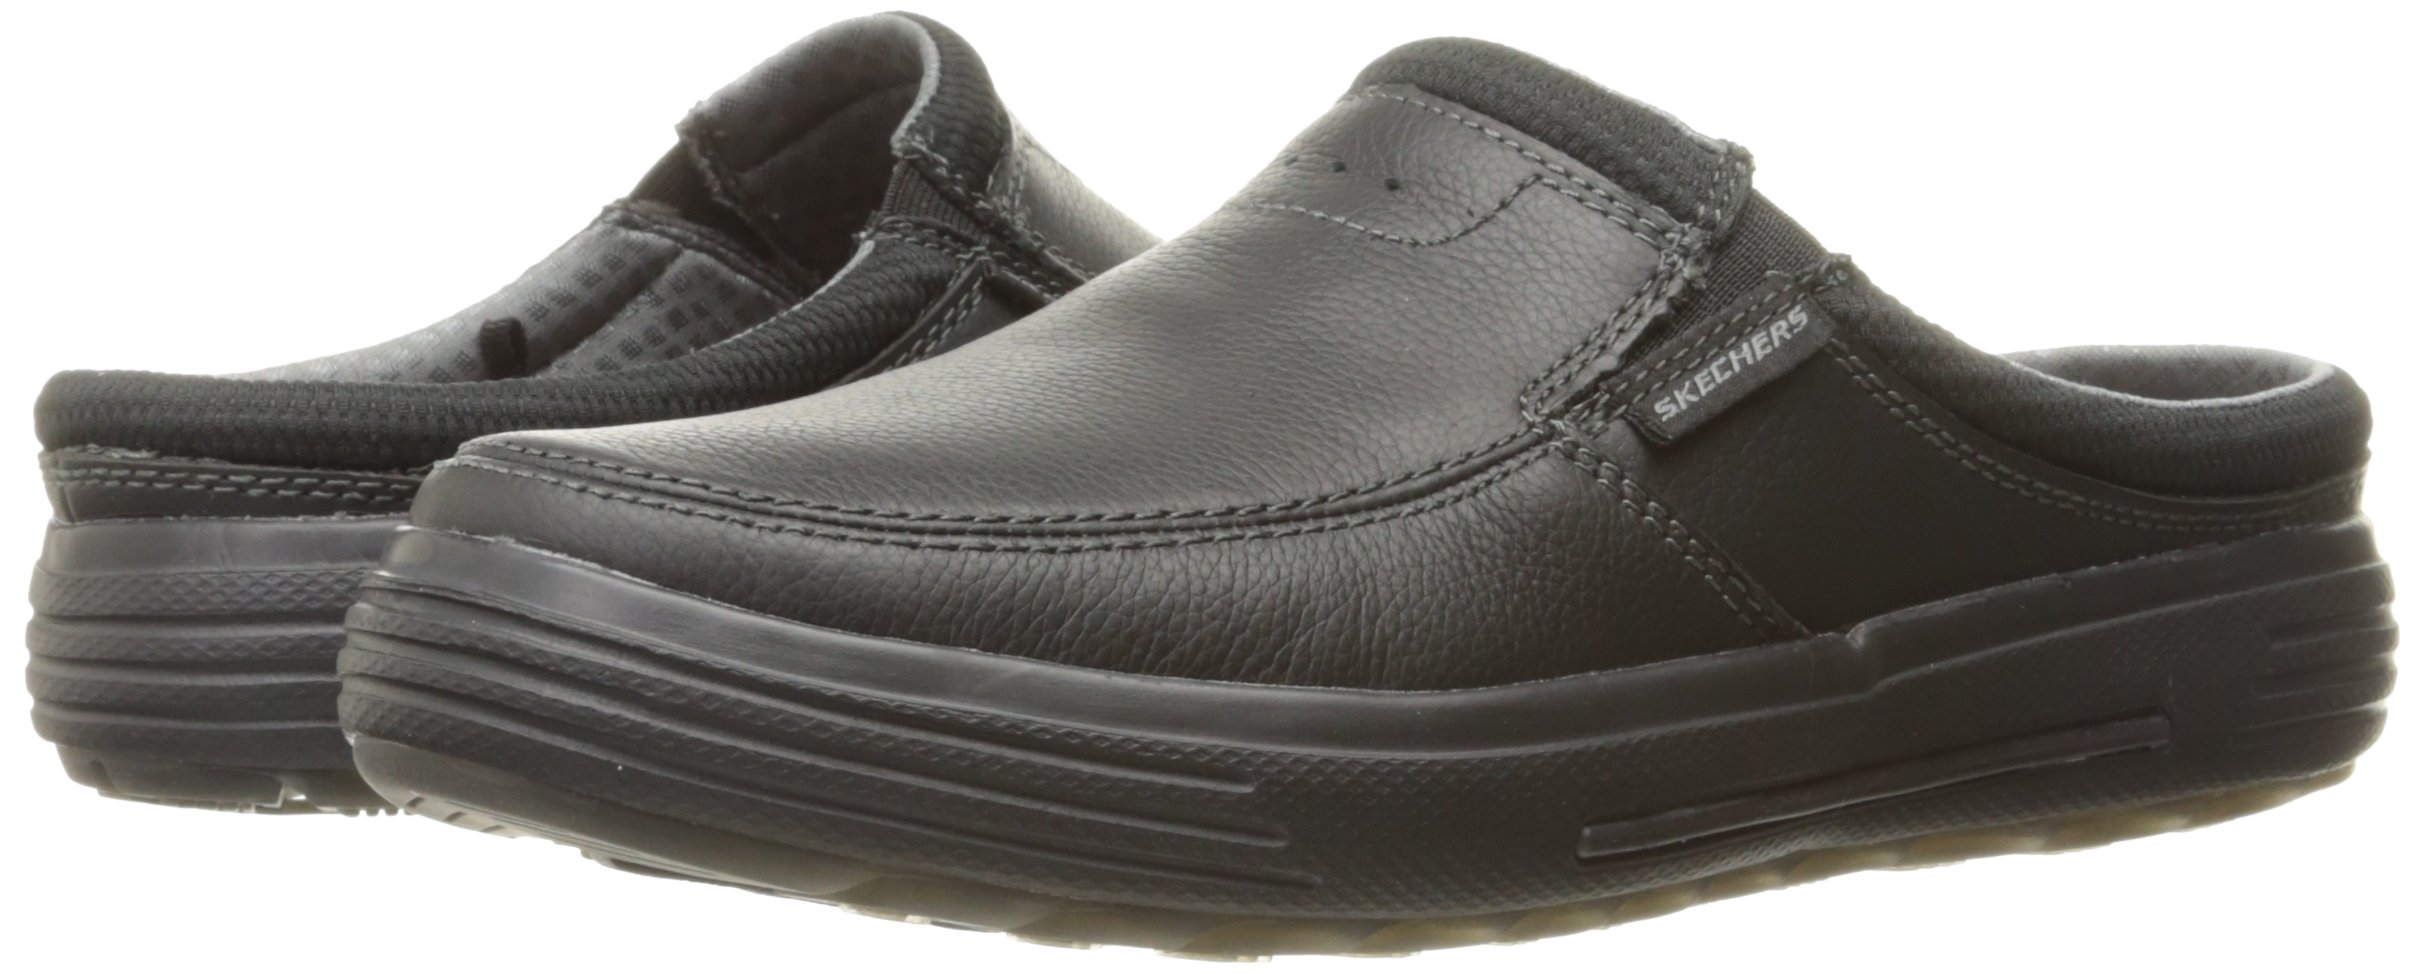 Skechers Men's Porter Vamen Slip-on Loafer